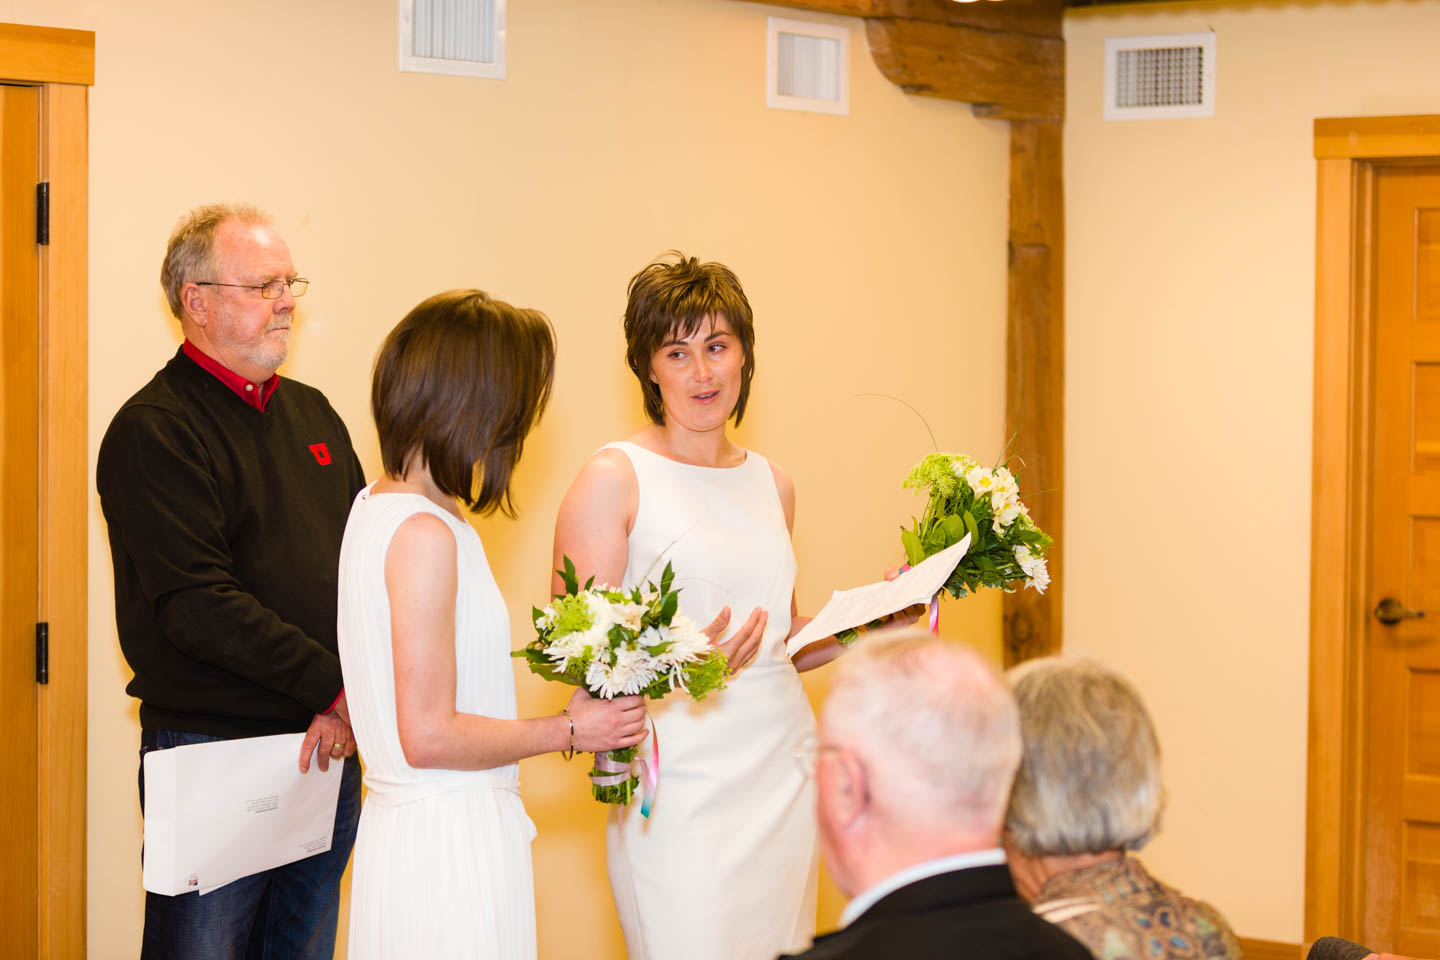 Sharing the wedding vows